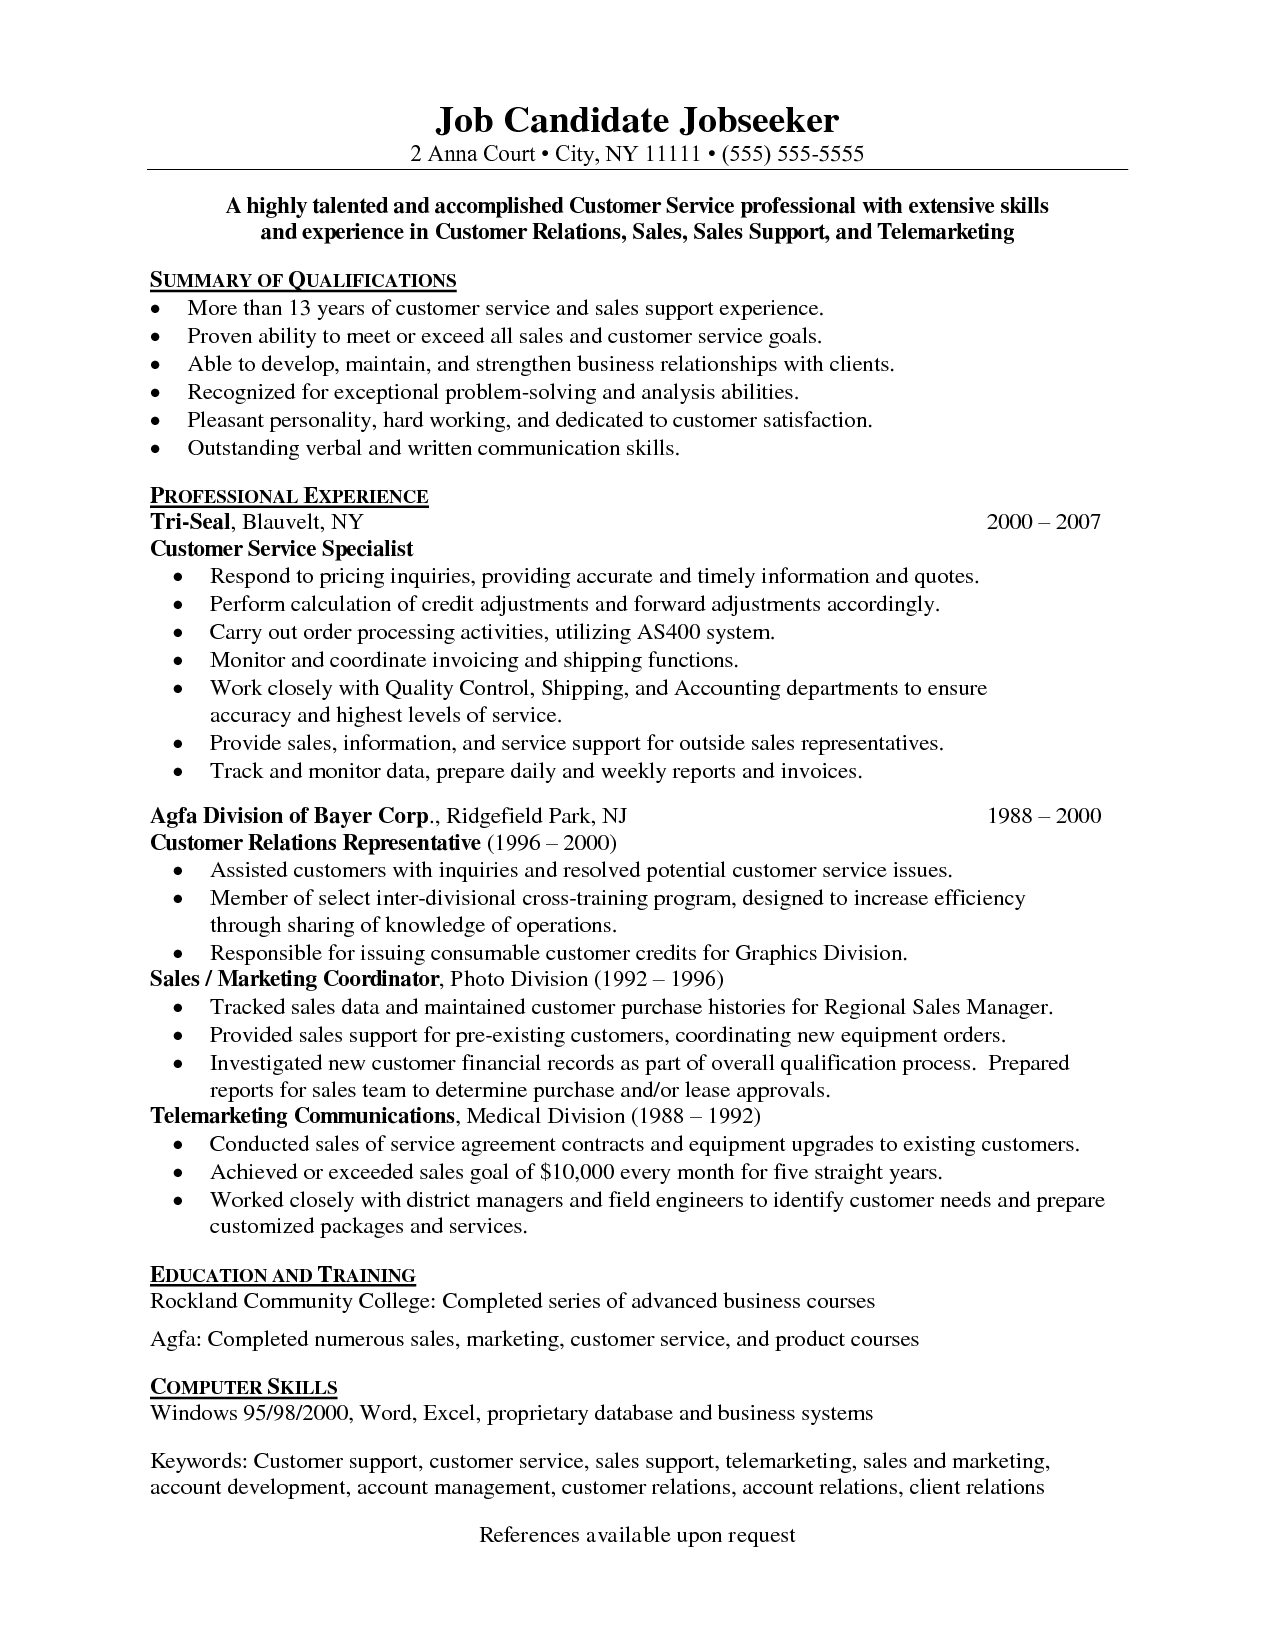 Resume Summary Statement Examples Customer Service Resume Summary Happytom  Co Resume Summary Statement Examples Customer Service